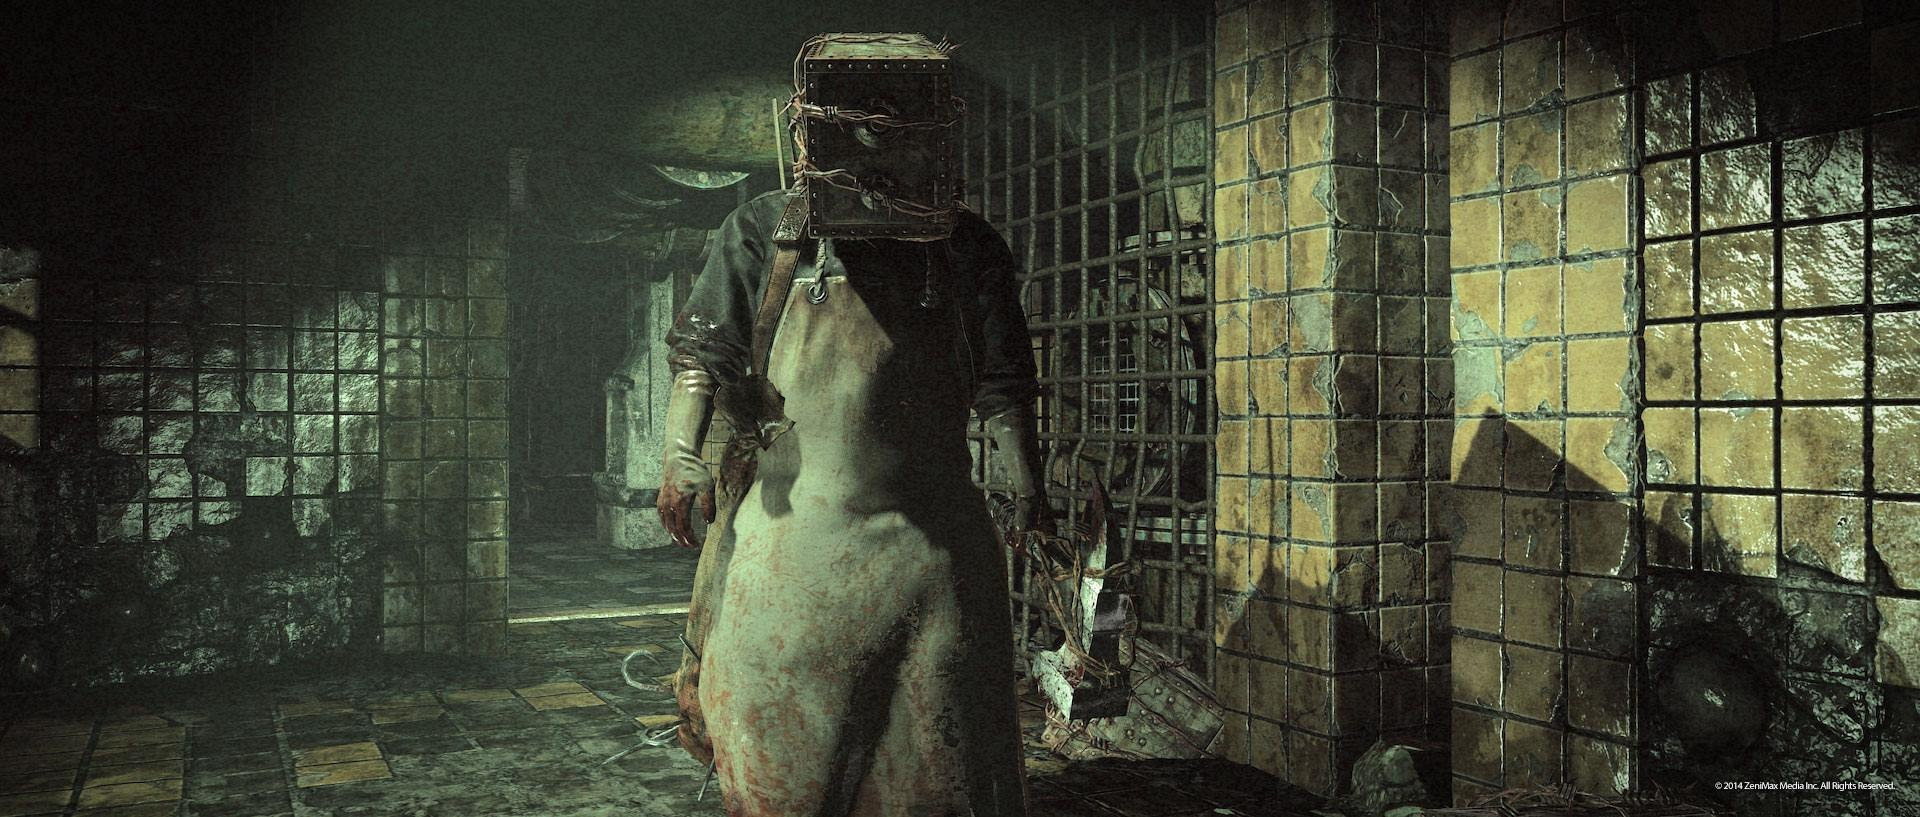 The Evil Within is more frustrating than terrifying